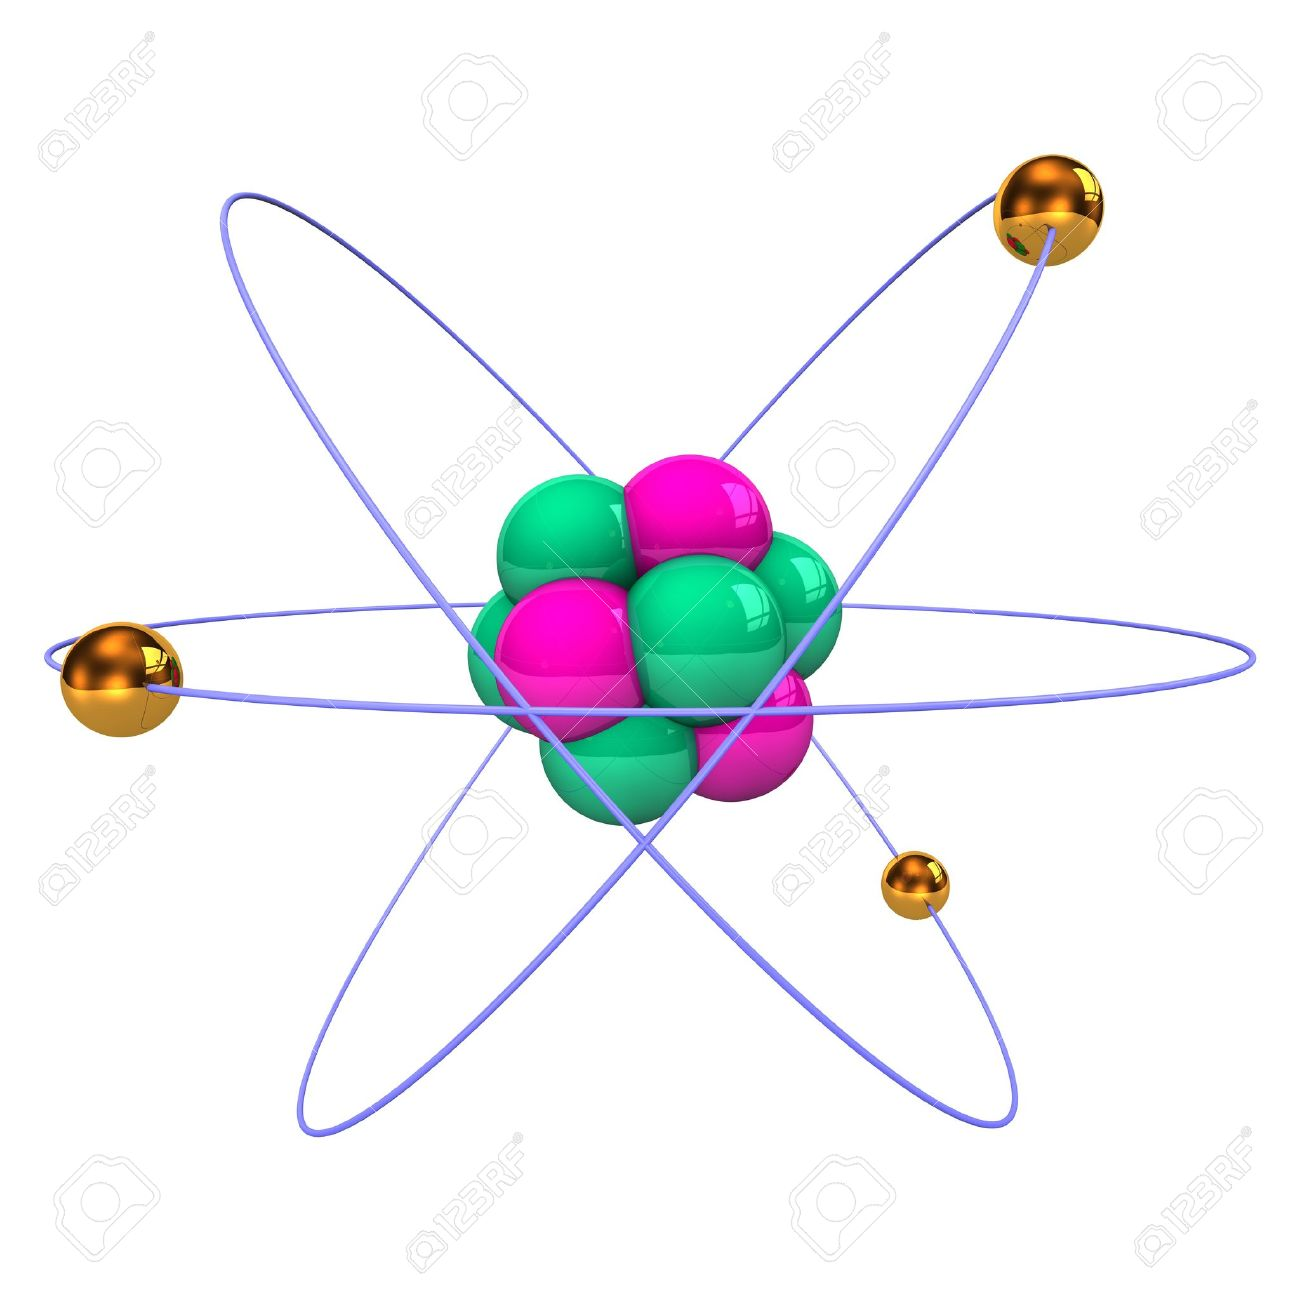 Atom With Golden Electrons, Purple Protons And Green Neutrons.